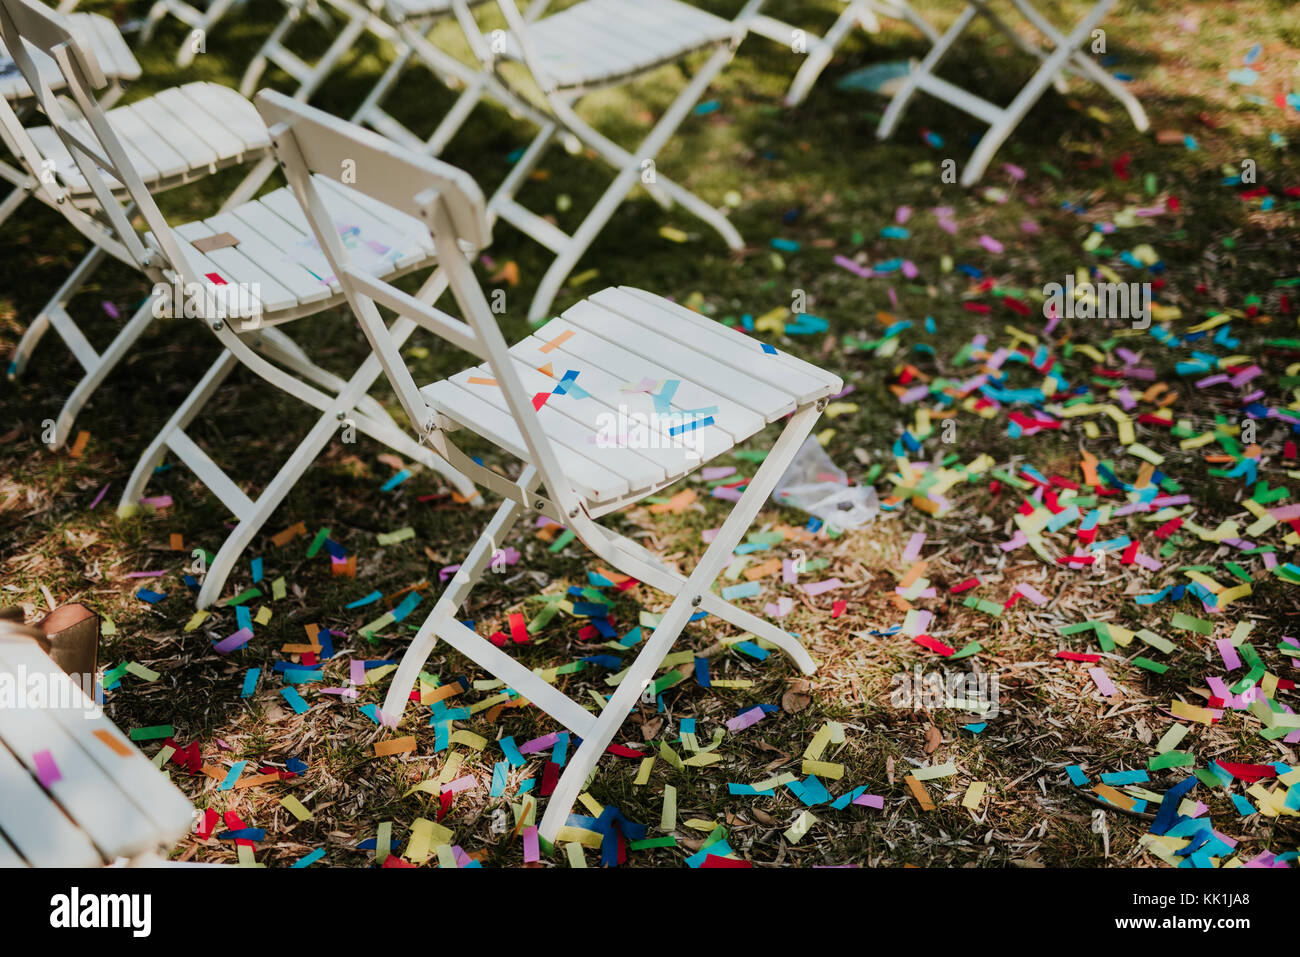 Confetti on chairs after wedding party - Stock Image